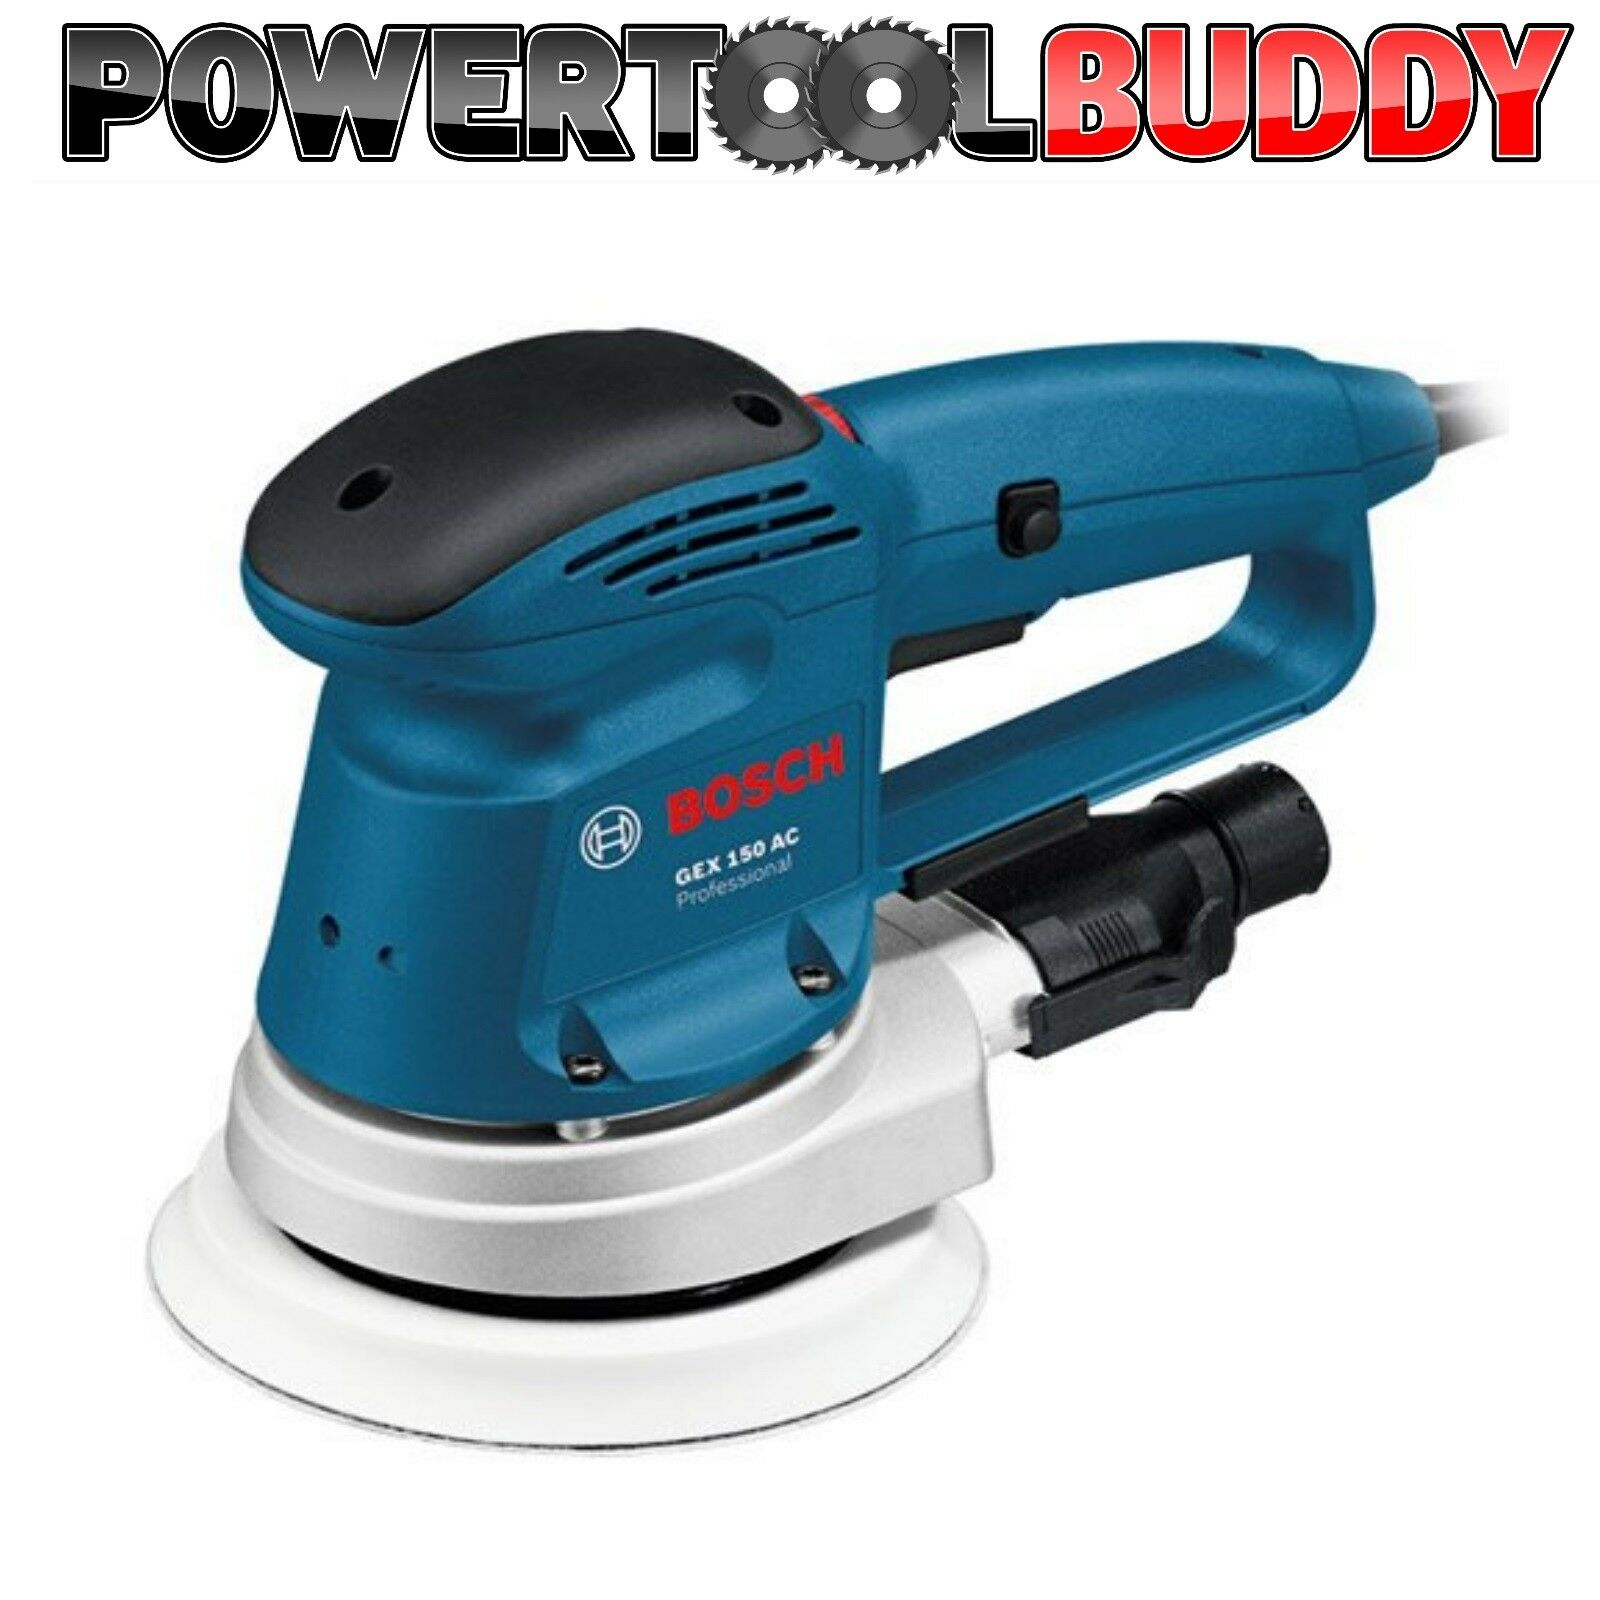 Bosch GEX150AC 150mm Random Orbit Sander 240volt 0601372771 NEXT DAY DELIVERY